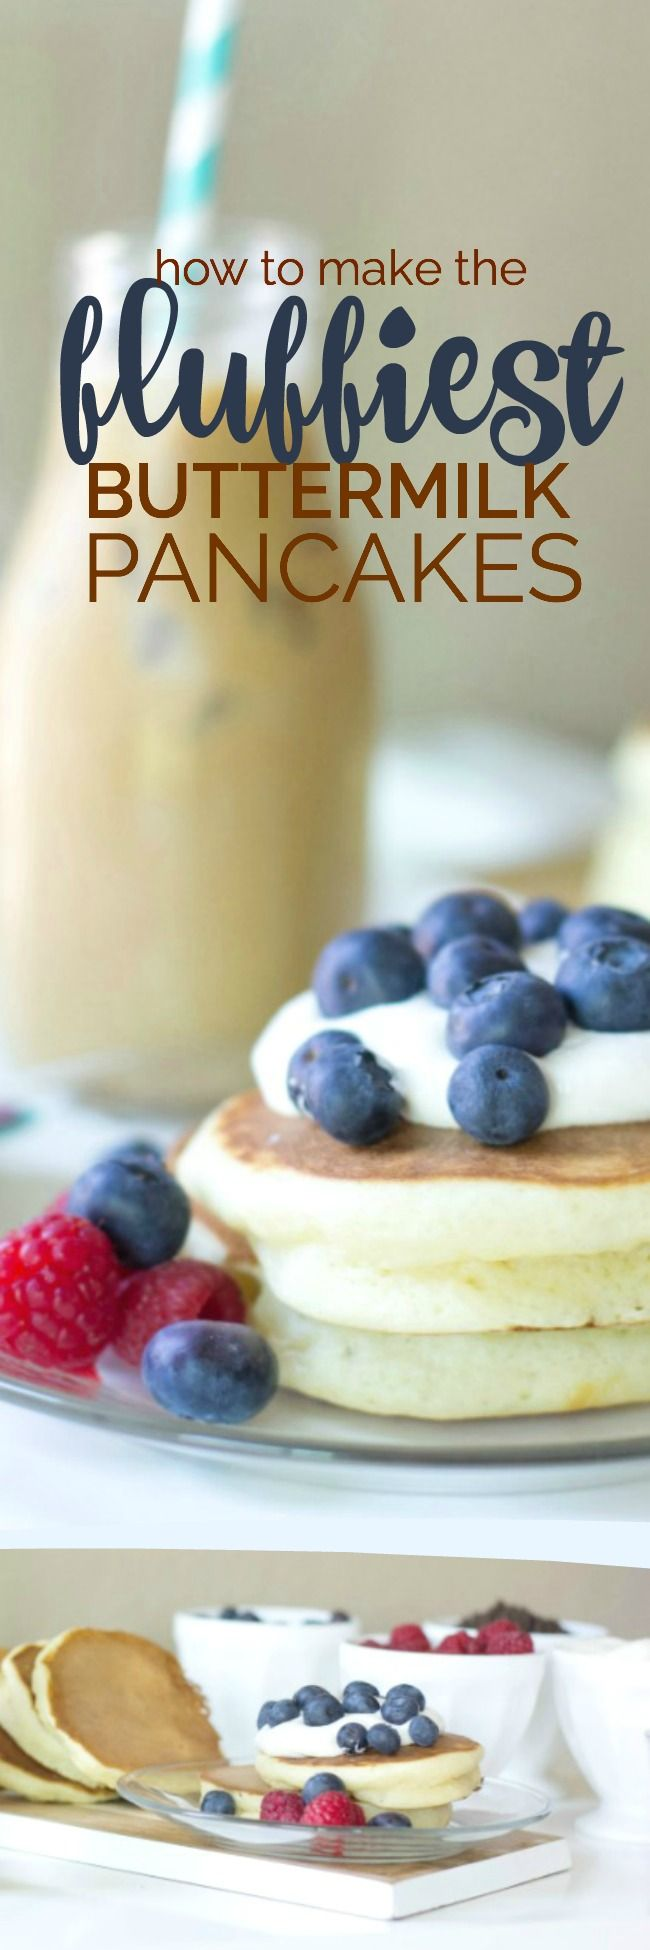 How to make the Fluffiest Buttermilk Pancakes that are perfect for your friends, family and summer parties!